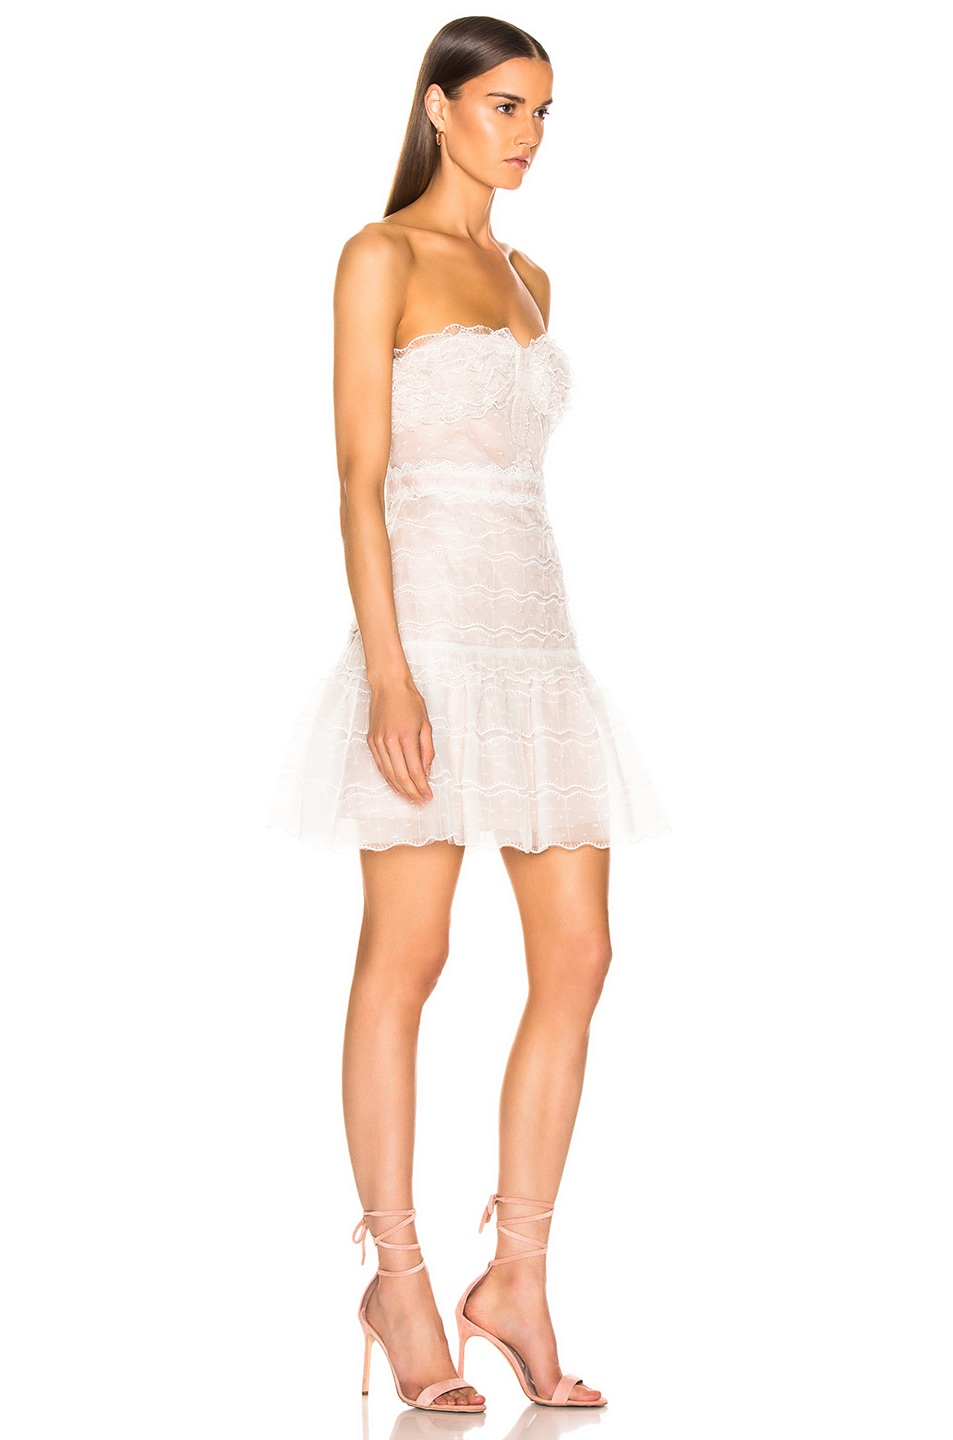 Image 2 of Alexis Adlai Dress in White